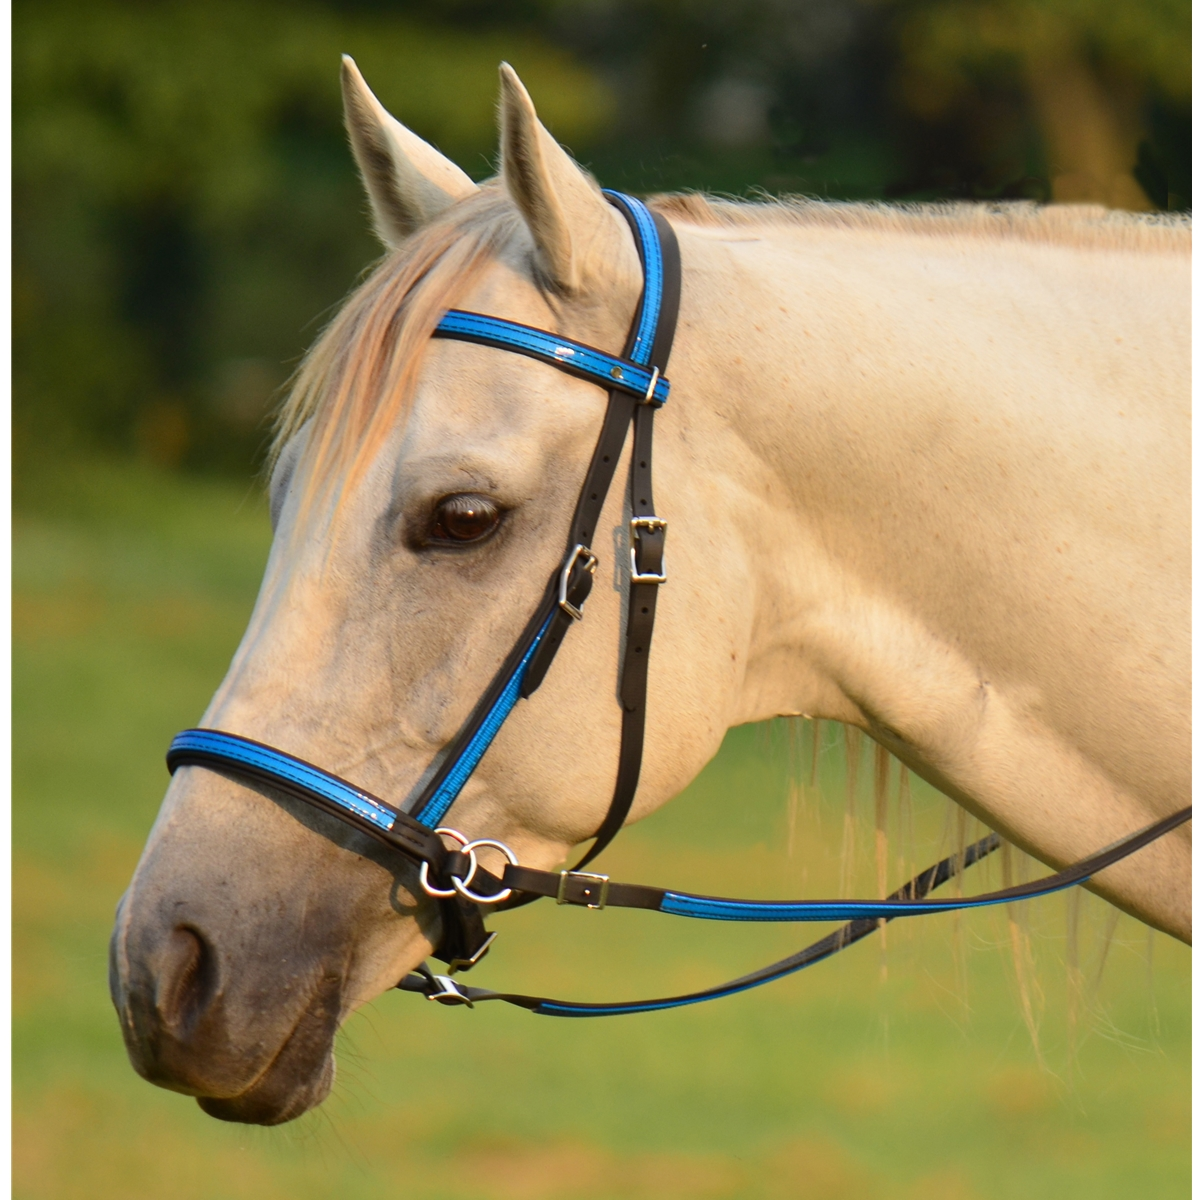 2 In 1 Bitless Bridle For Horses Any Two Color Combination Two Horse Tack